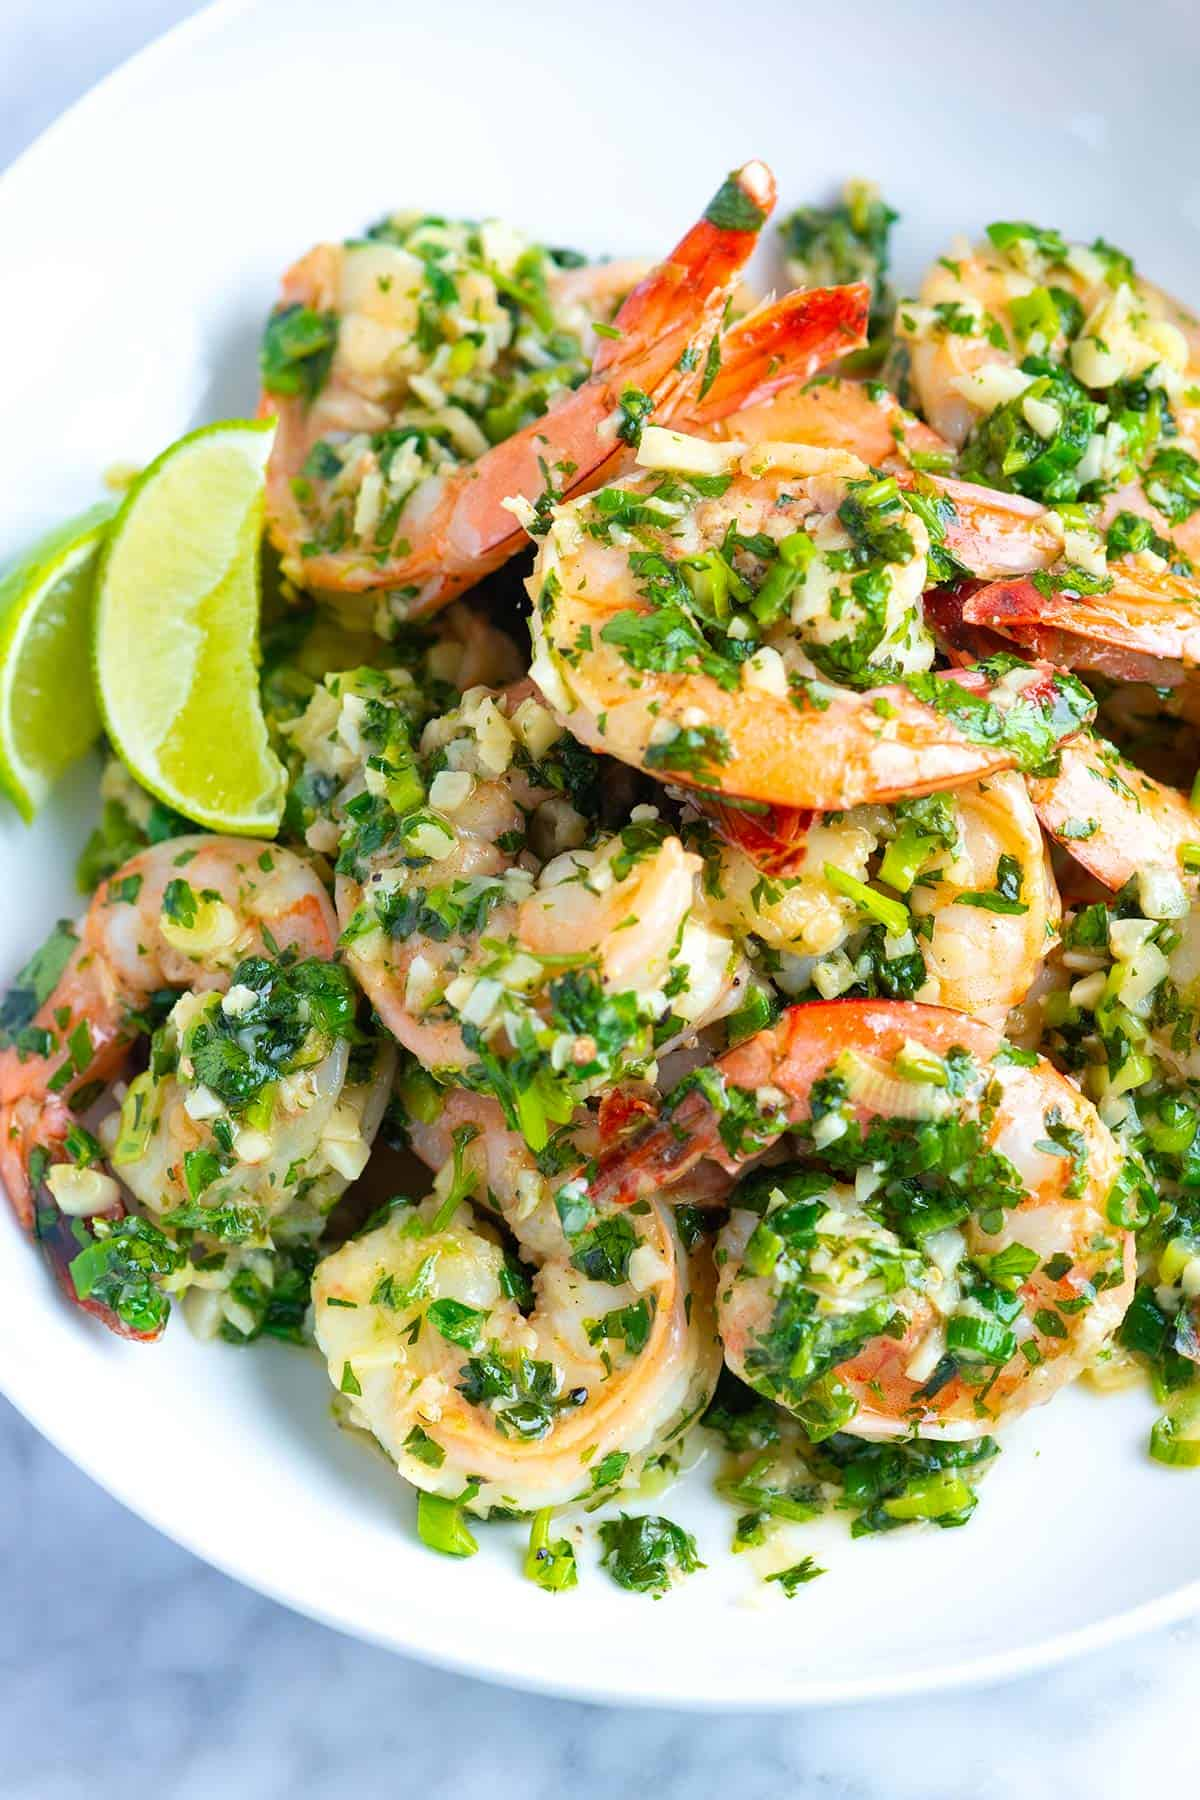 These garlicky, buttery shrimp come together in under 20 minutes. Inspired by traditional shrimp scampi, we swap lemon for lime and parsley for cilantro.